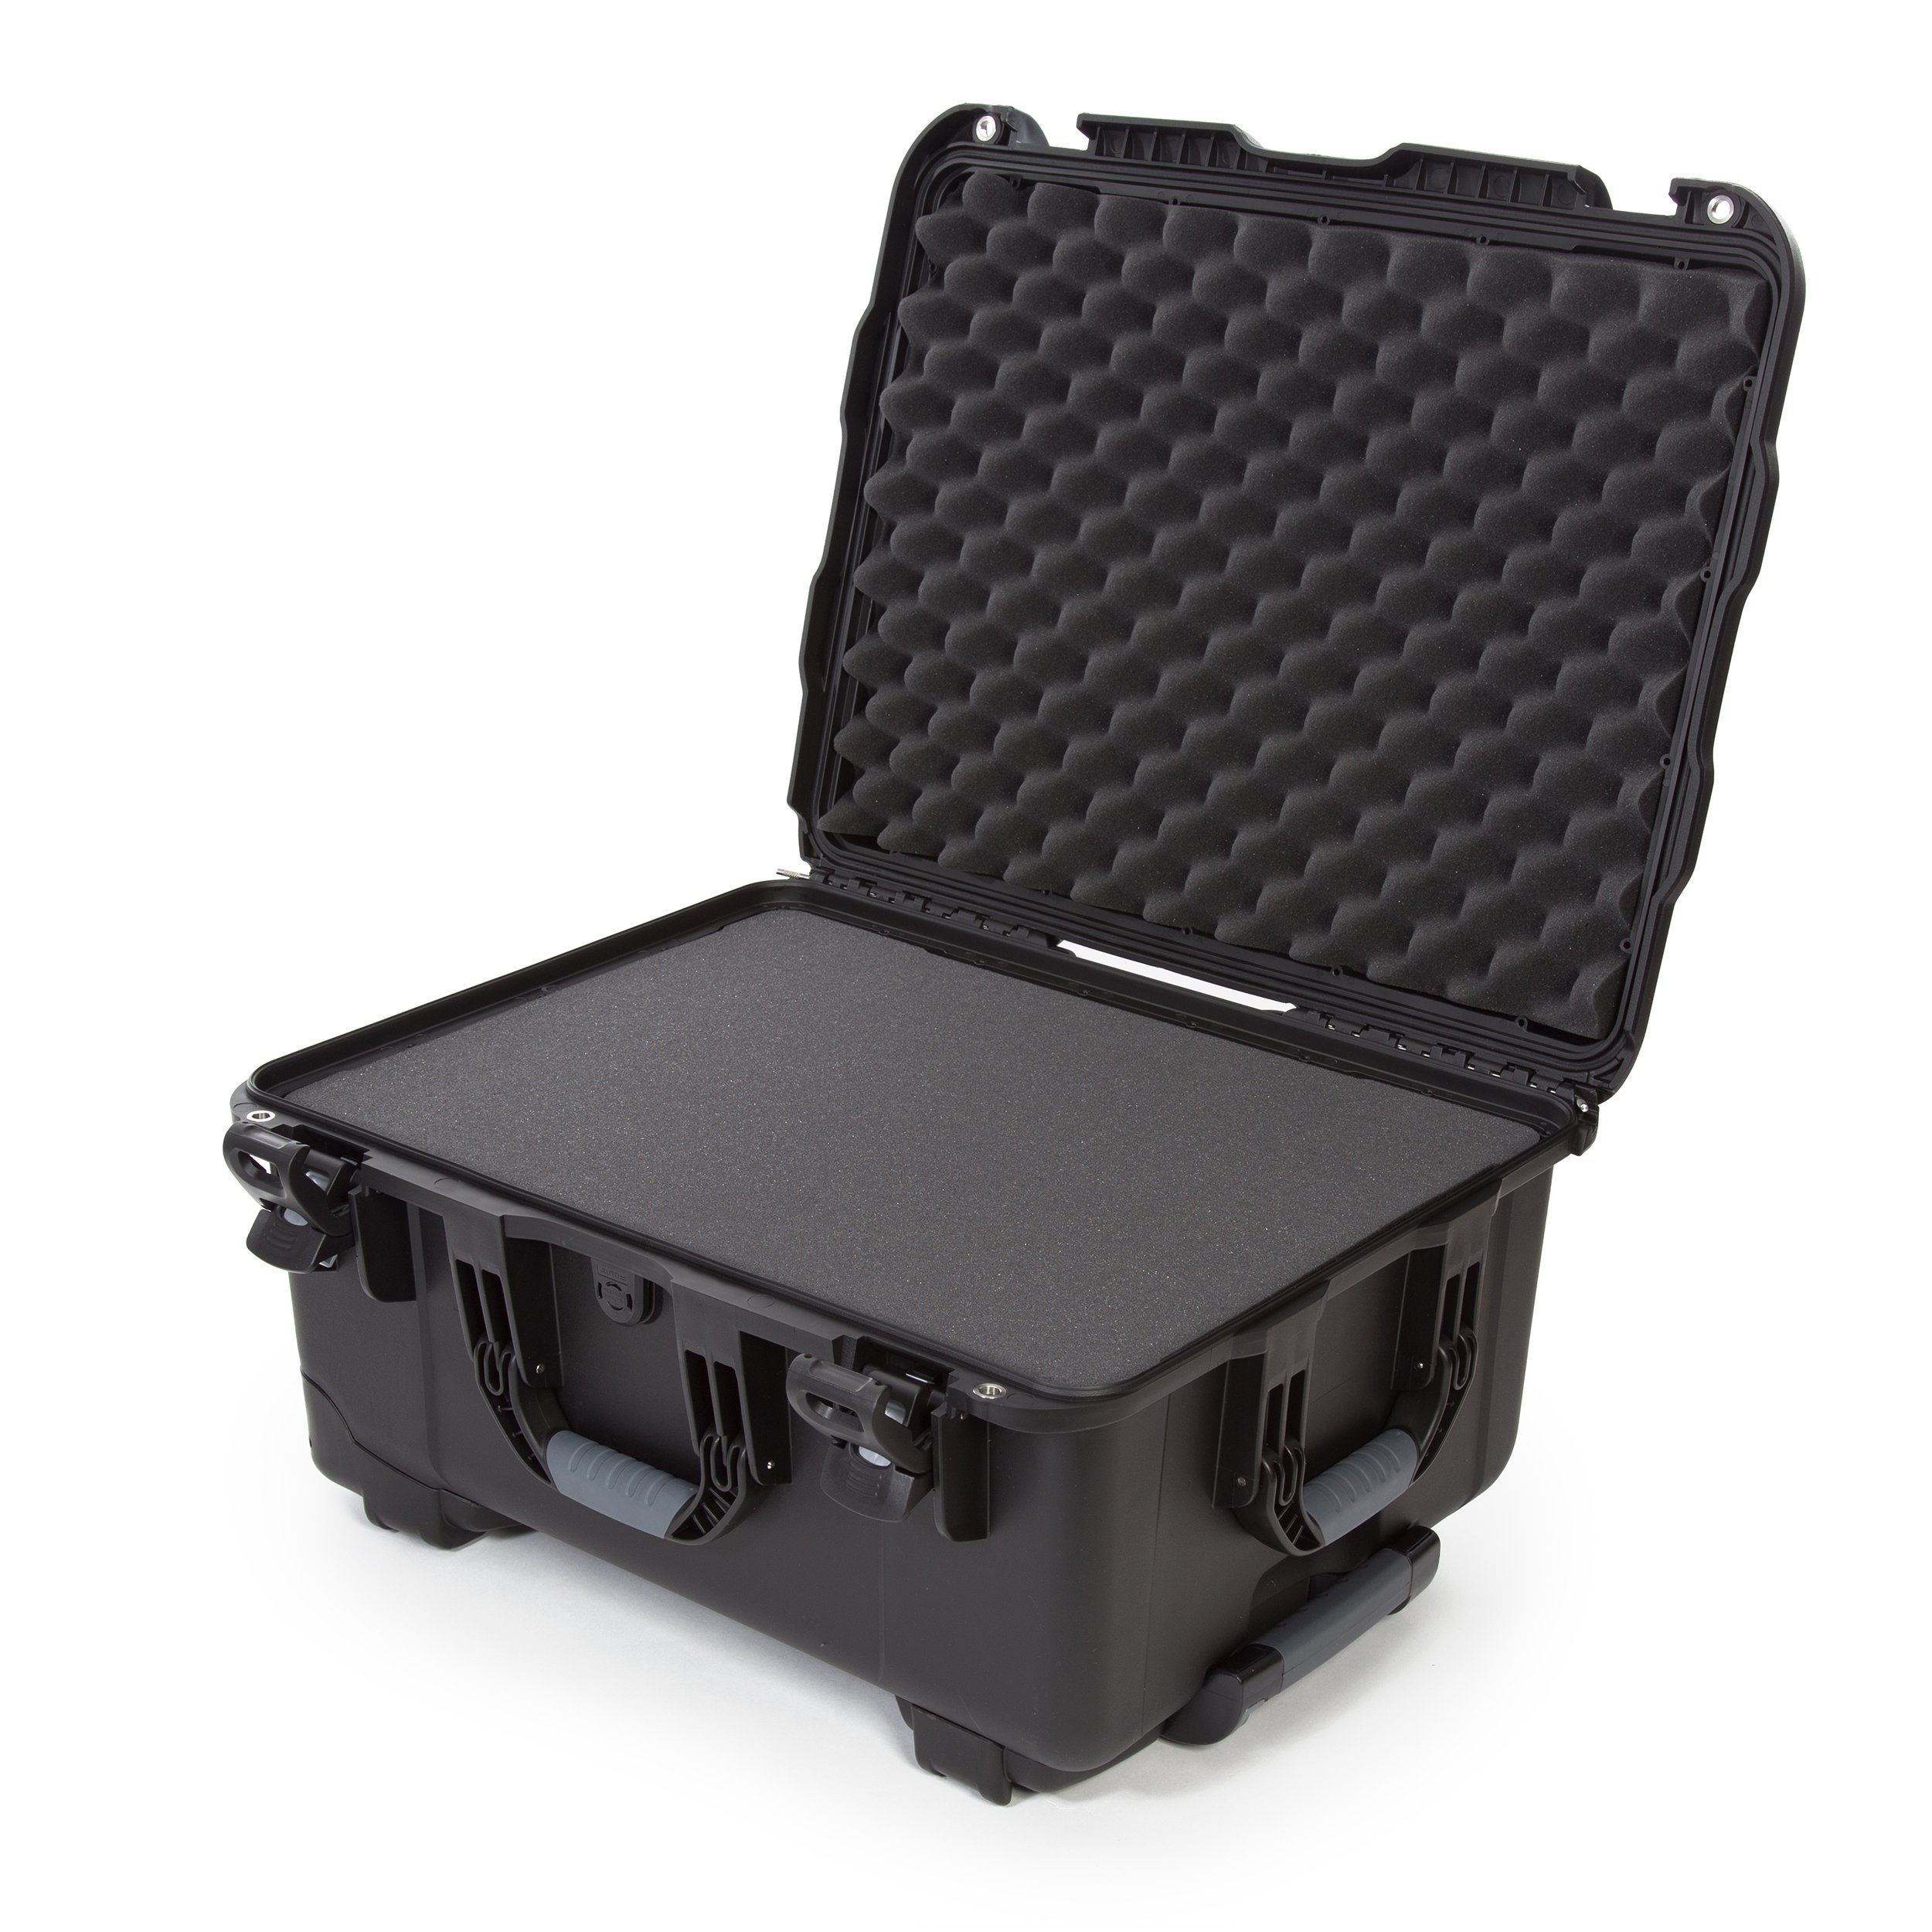 Nanuk 950 Waterproof Hard Case with Wheels and Foam Insert - Black by Nanuk